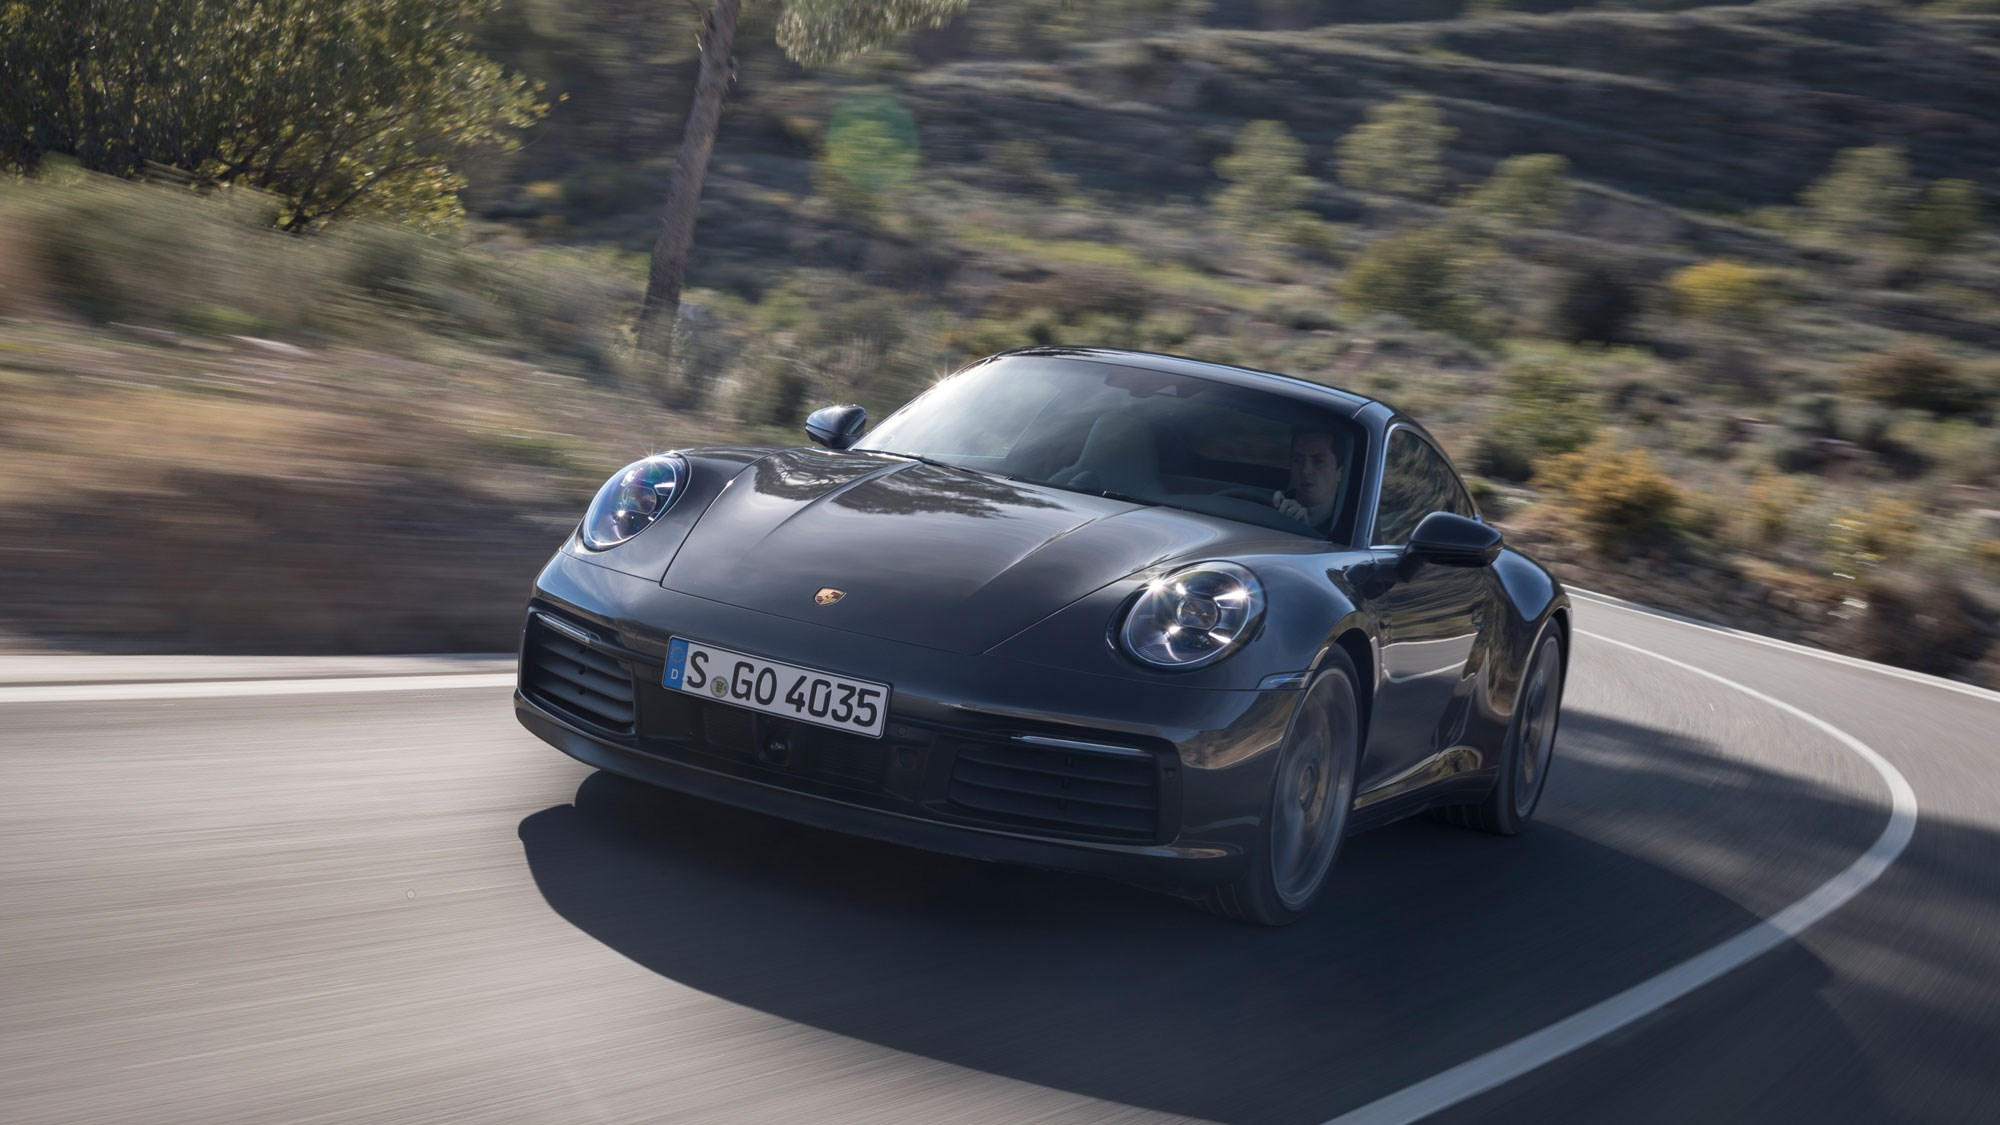 The new Porsche 911 reviewed by CAR magazine